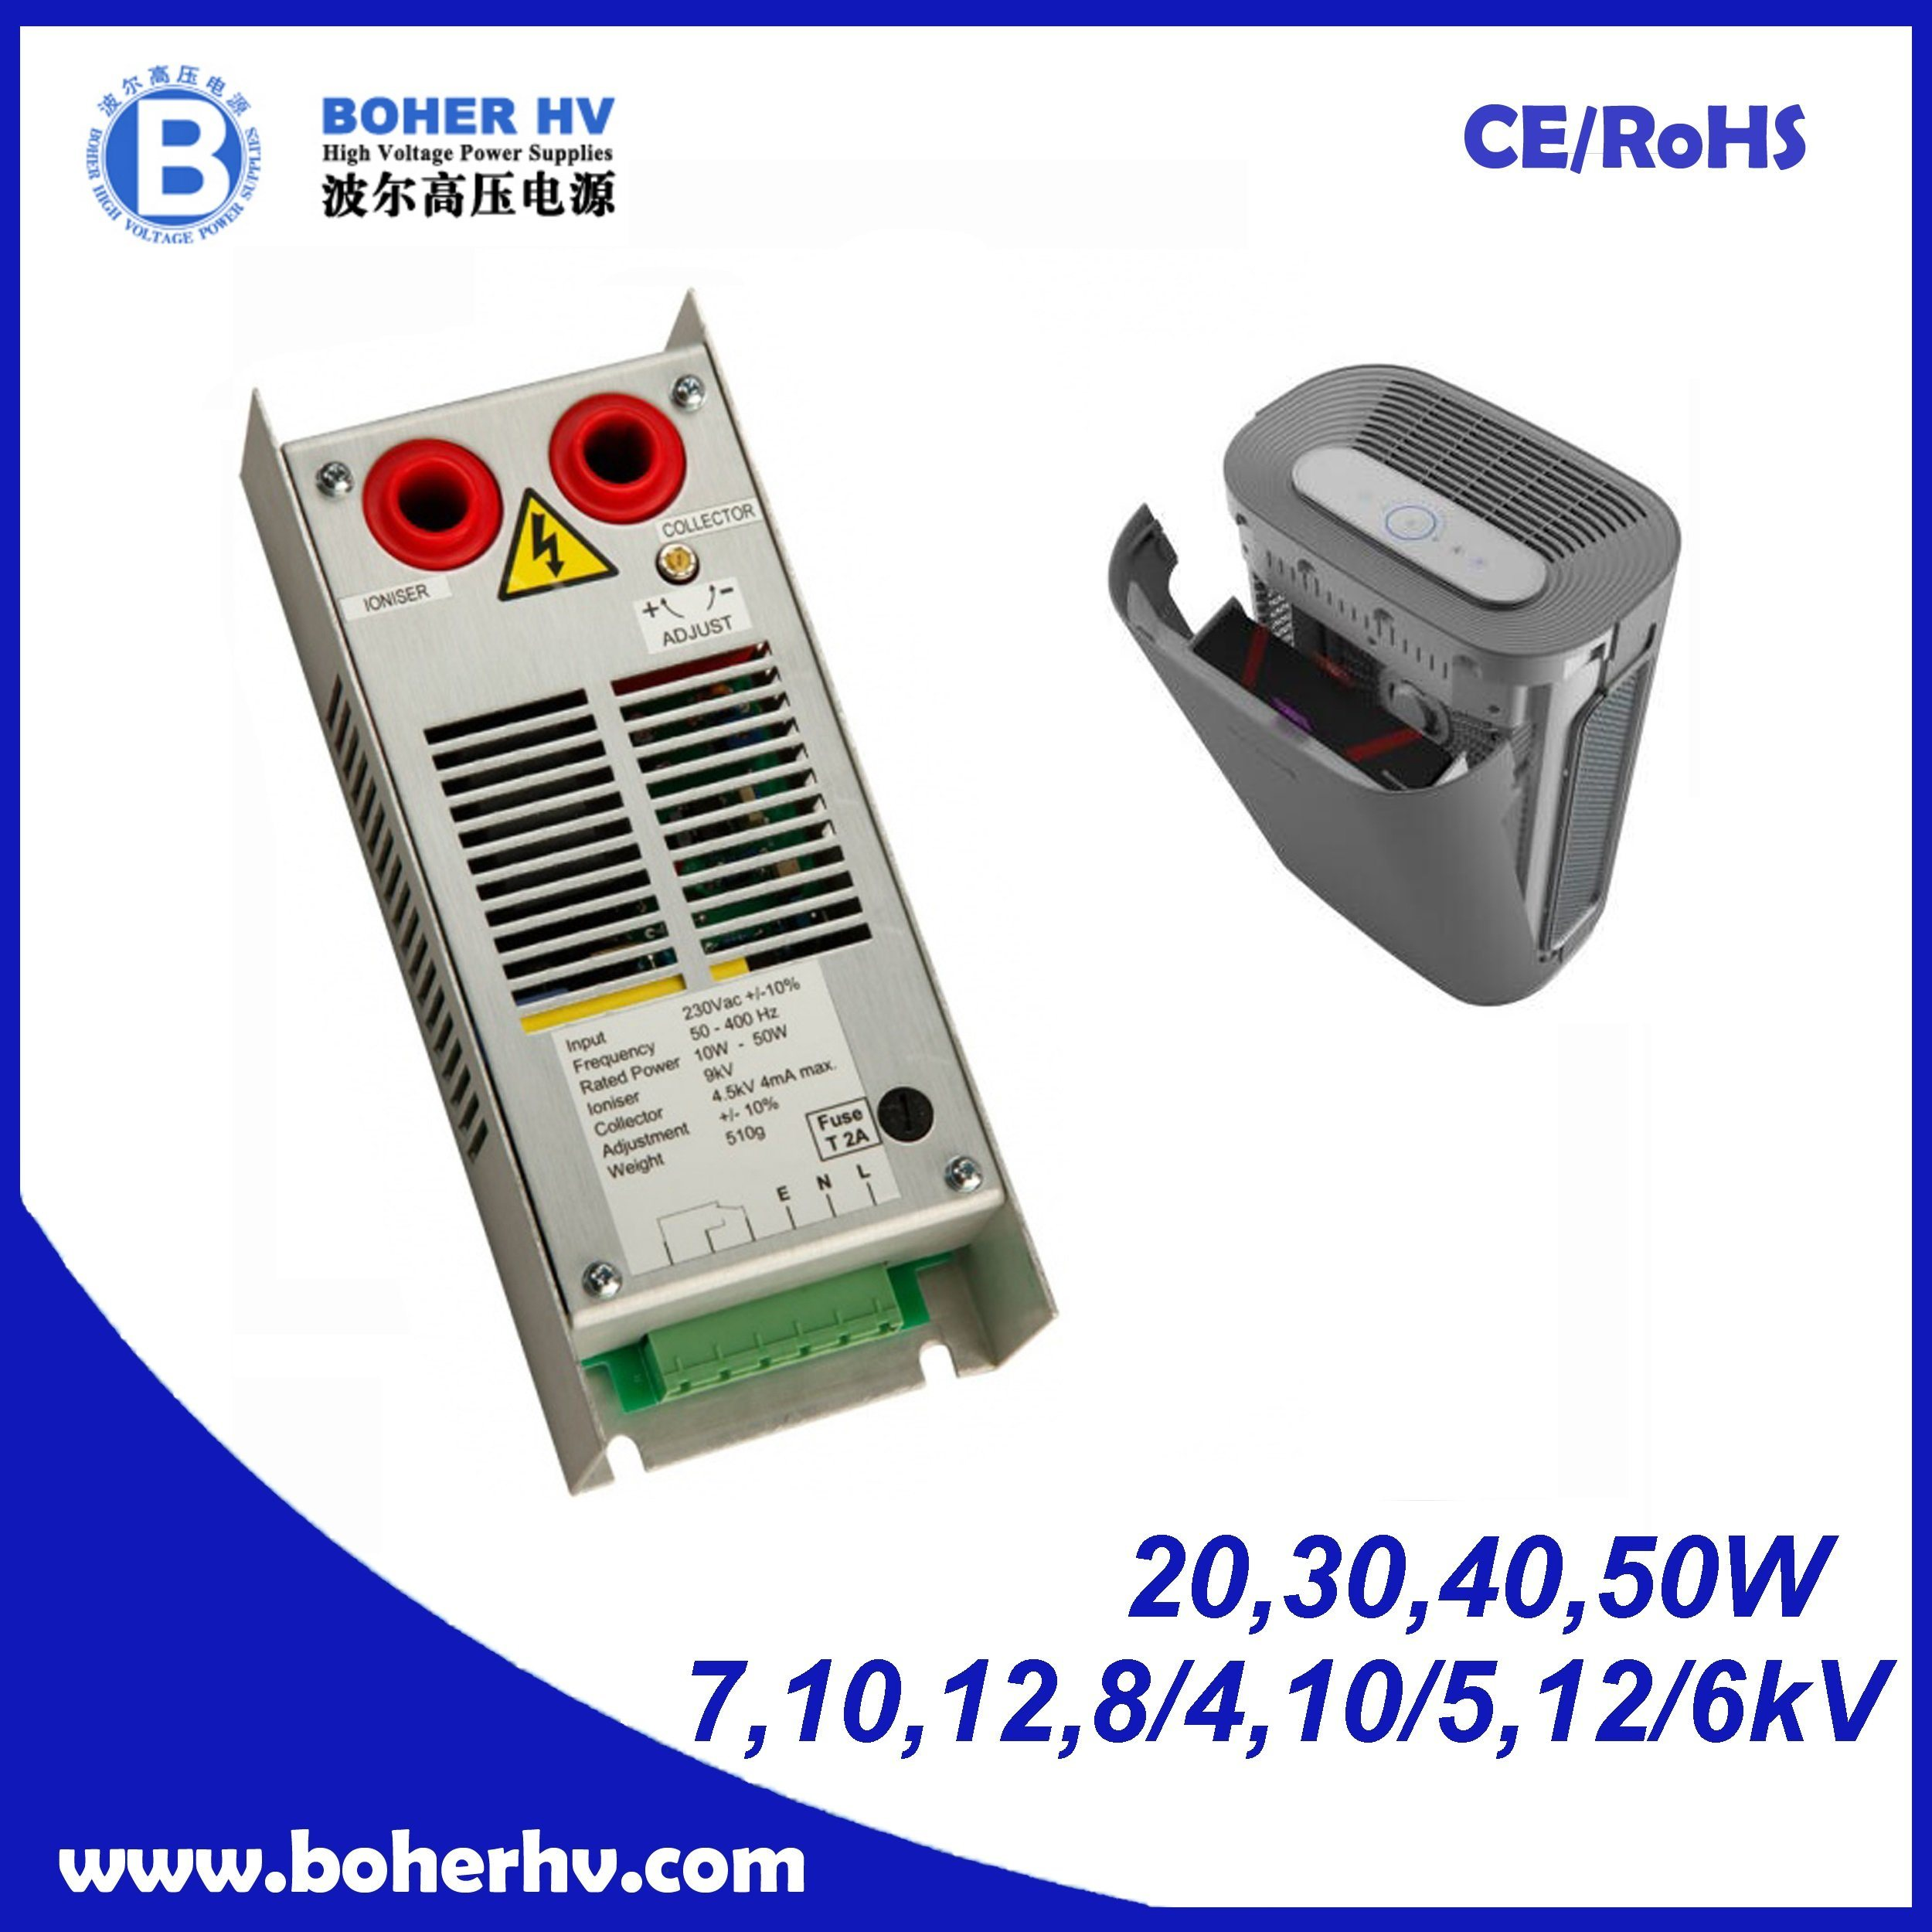 China High Voltage Air Purification Switching Regulated Power Supplies Unit Cf01a Supply Hv